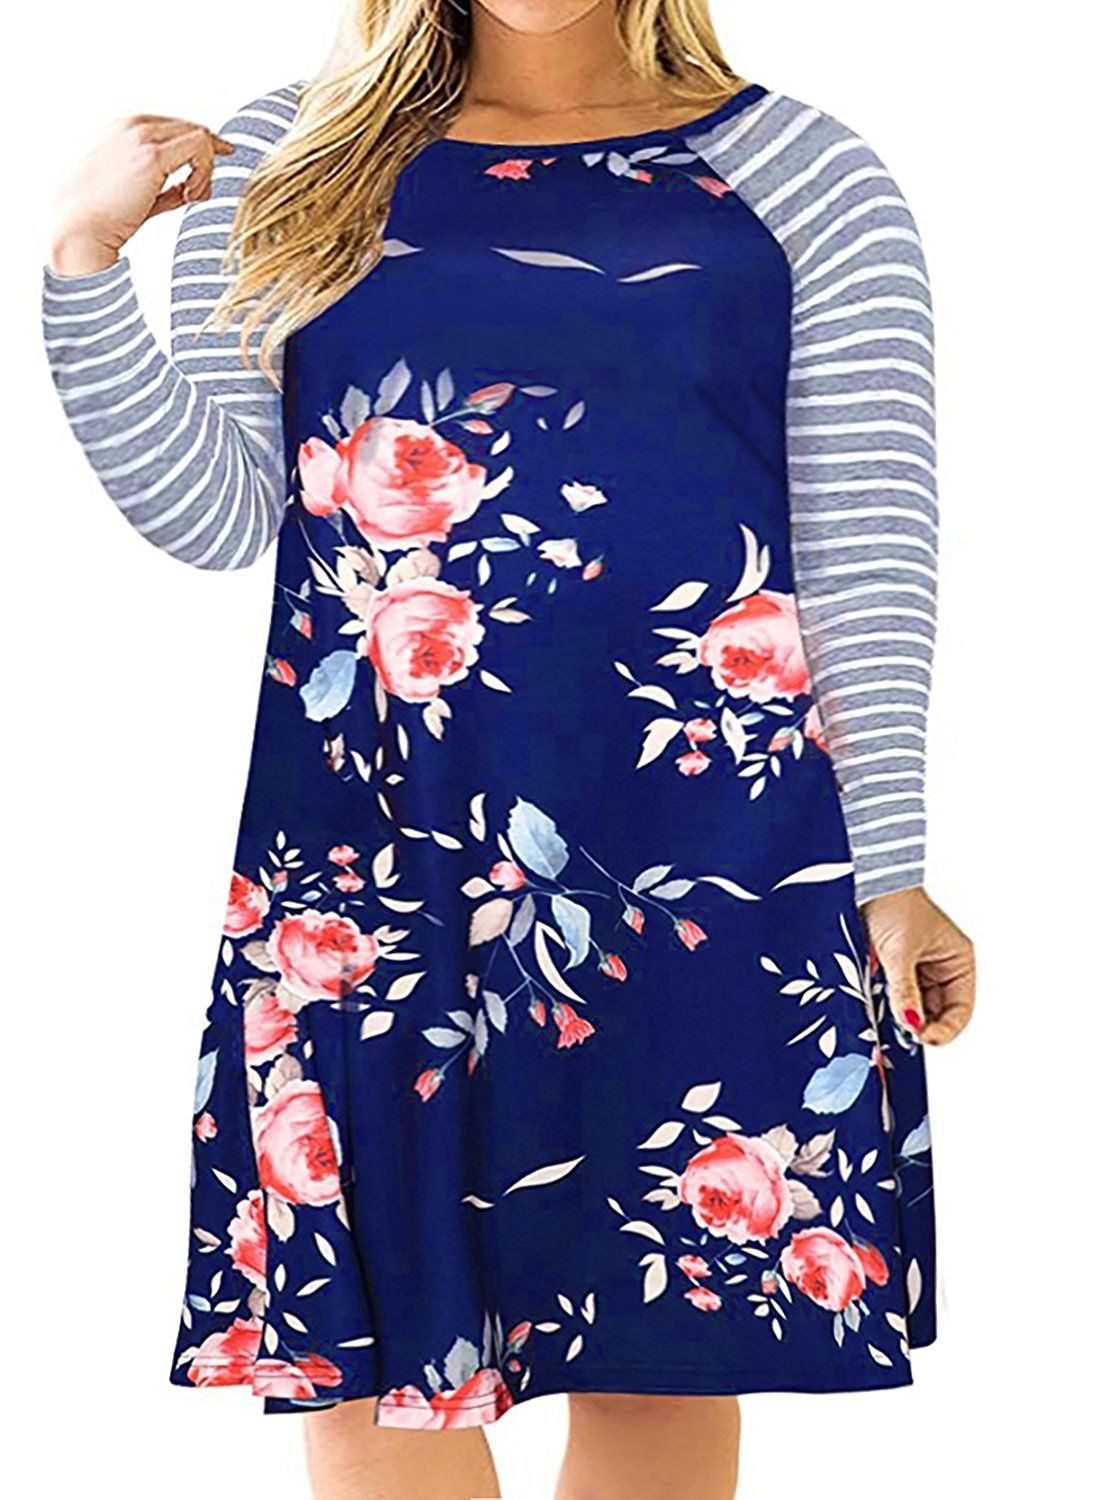 73d78a5b5dc 100% Polyester Imported Hand Wash-only by cold water The drop down size is  US Plus Size Floral Midi Dress with striped sleeves Round Neck T Shirt  Dresses ...